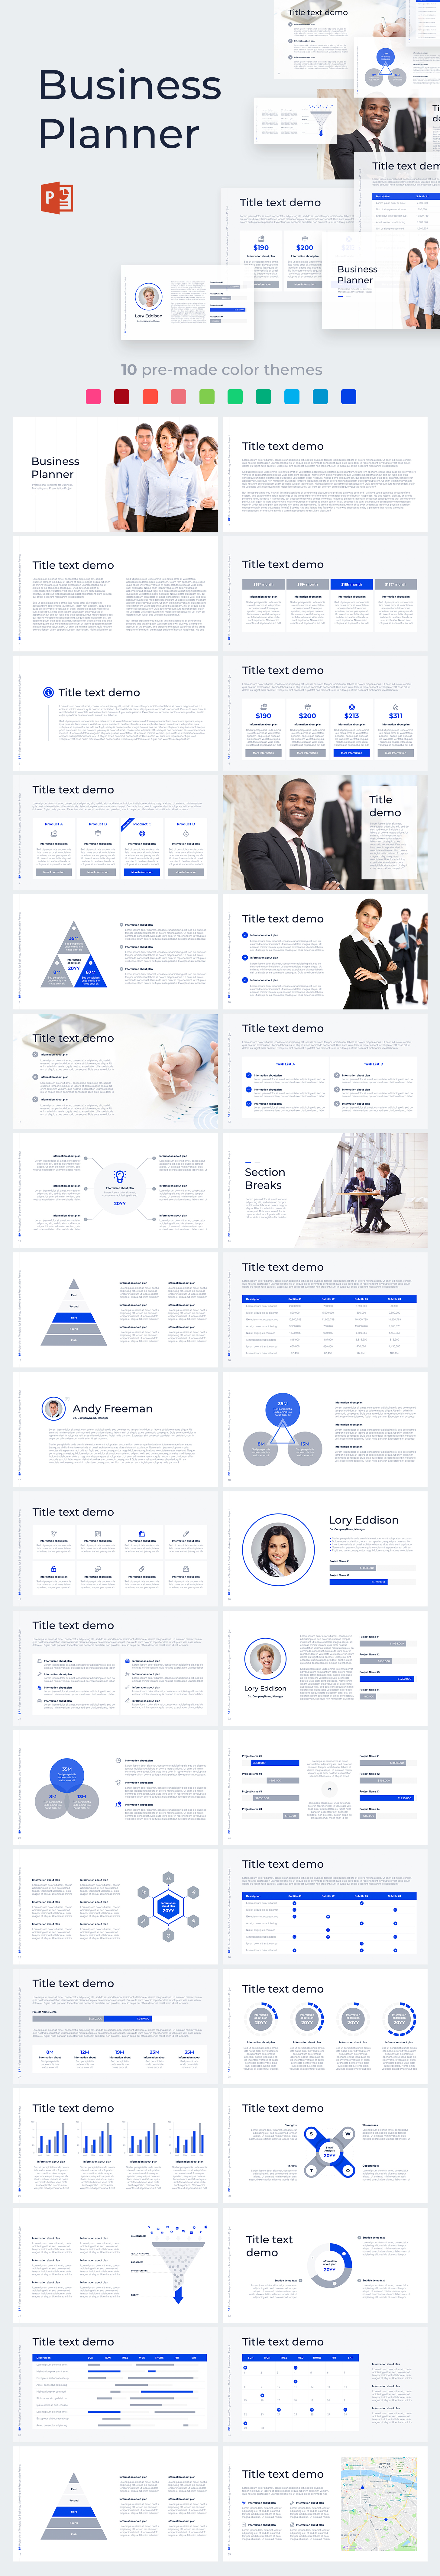 business planner pro powerpoint template